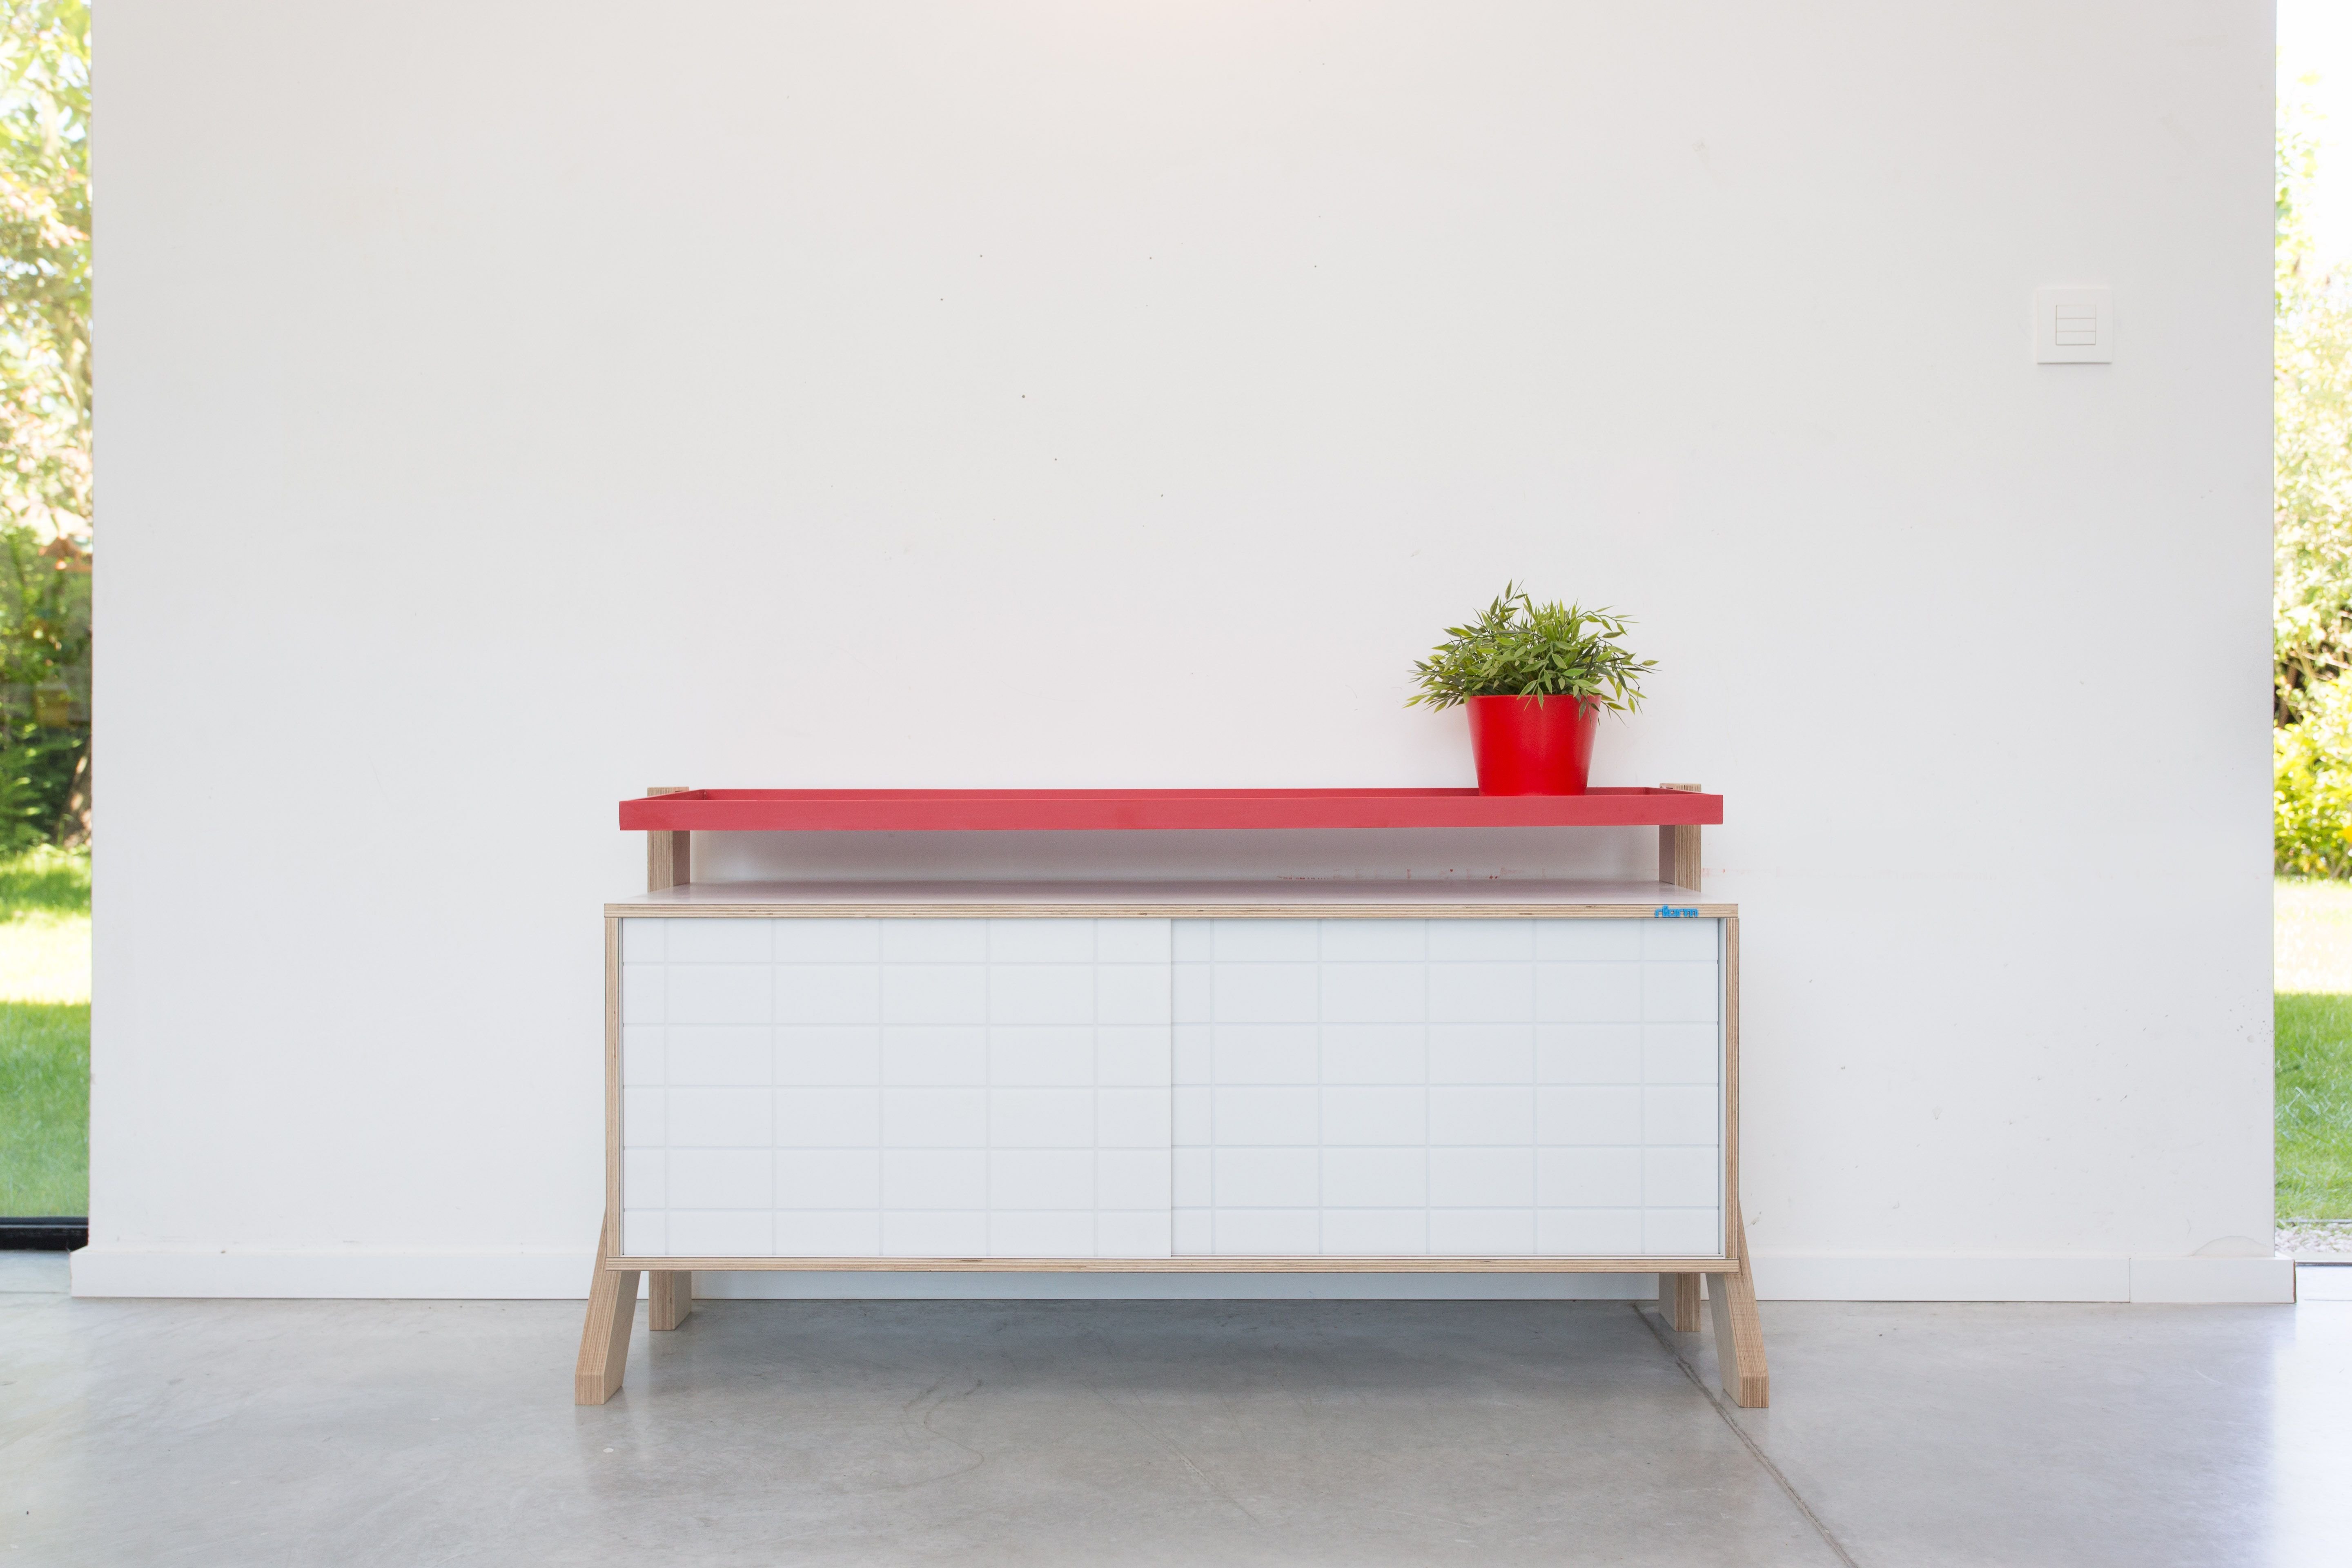 Frame 03 Small by Rform. Modern sideboard offered in eight different colors, with two intarchangeable doors and top shelf. Handmade in Birch plywood.